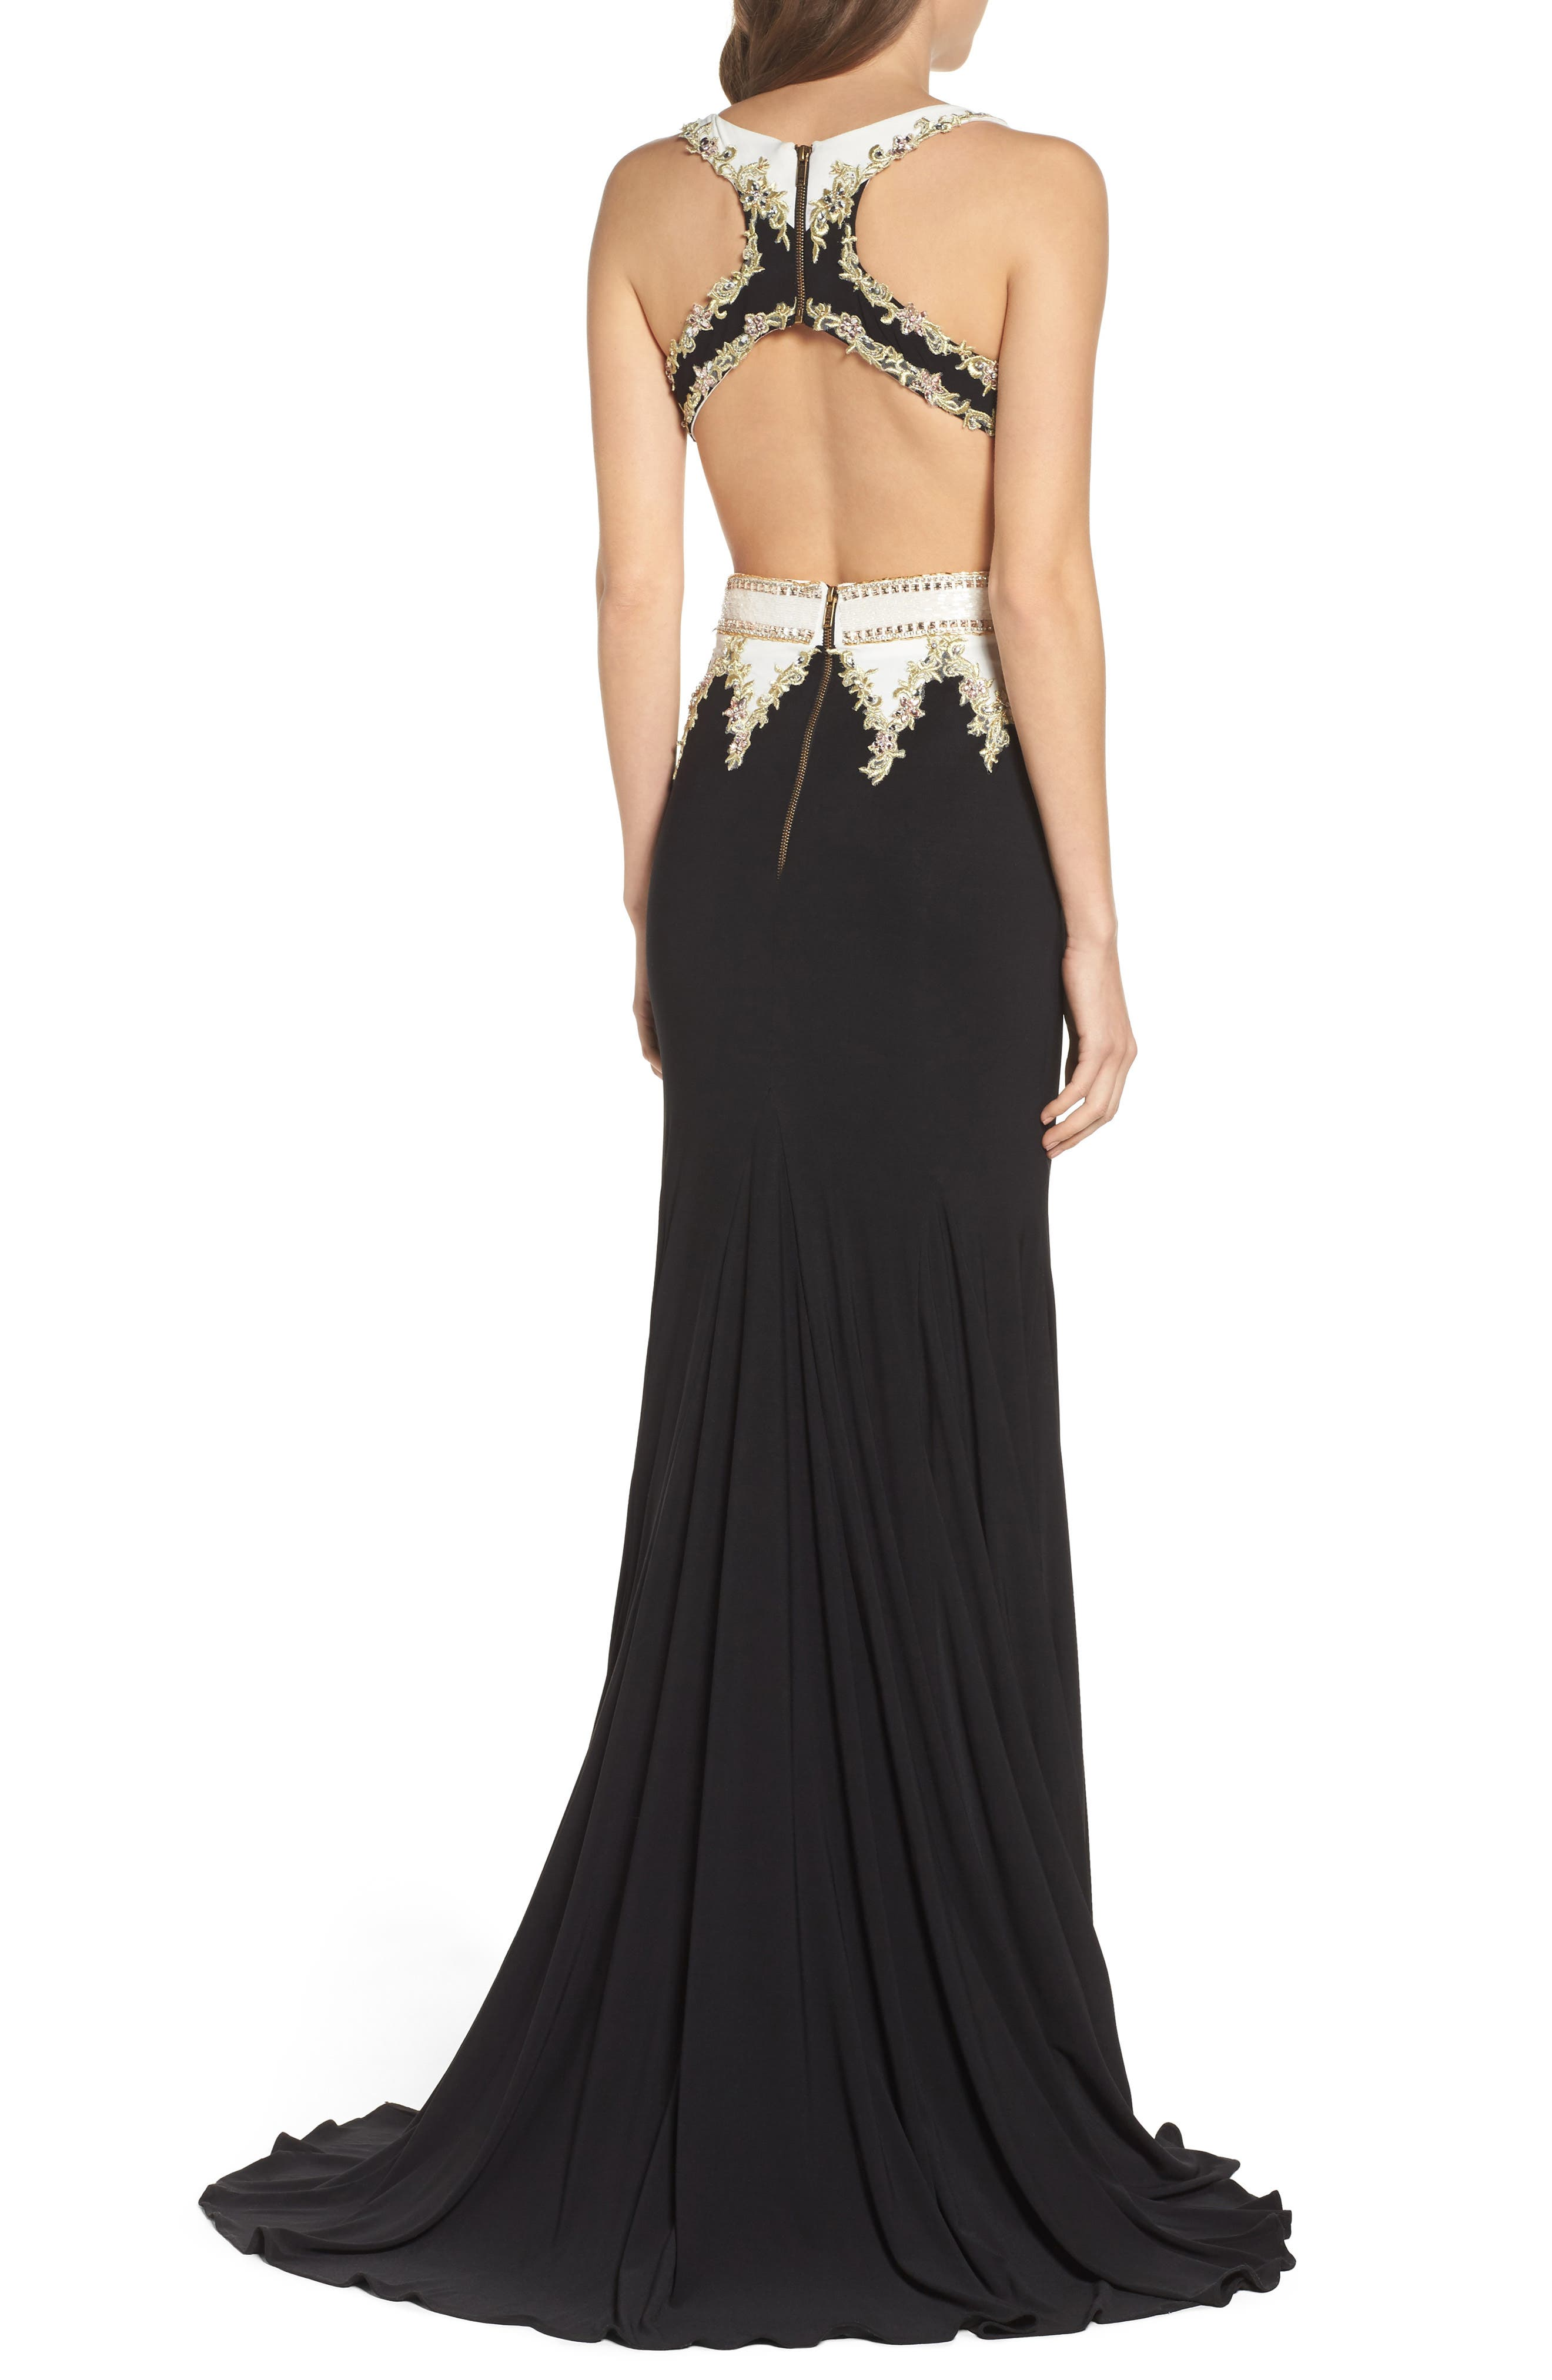 Embellished Cutout Jersey Gown,                             Alternate thumbnail 2, color,                             Black/ White